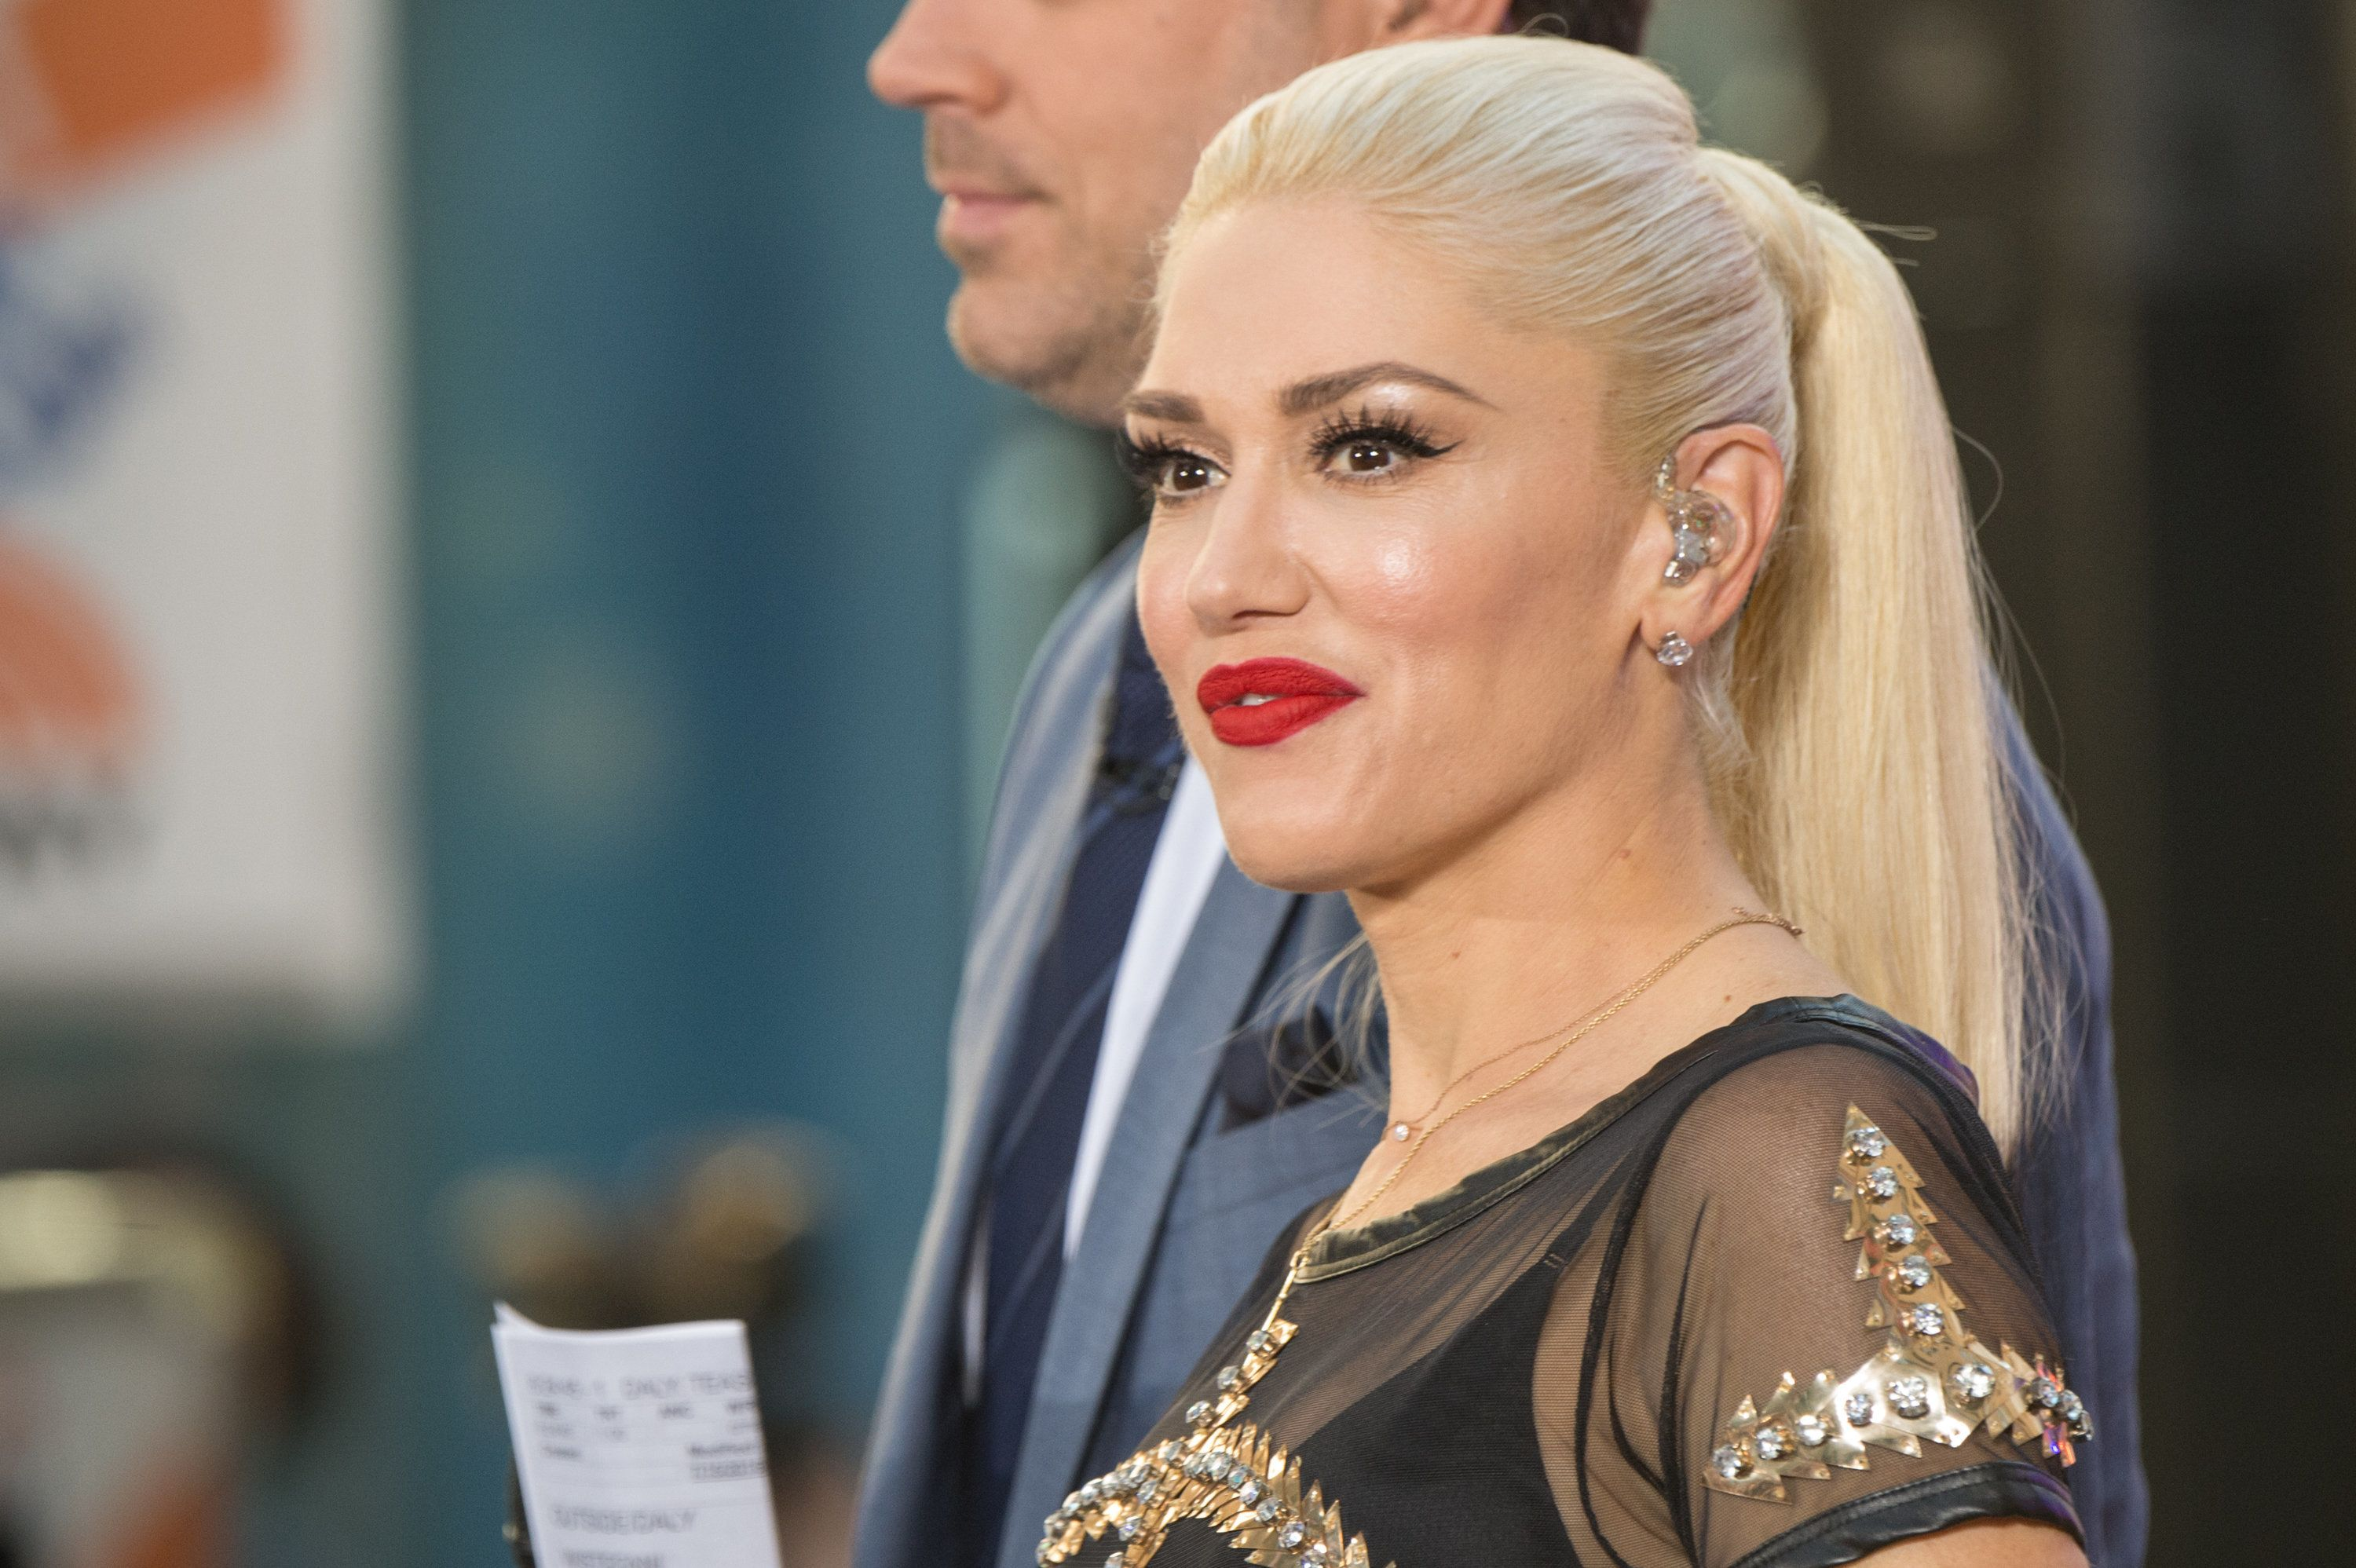 NEW YORK, NY - JULY 15:  Singer Gwen Stefani performs n NBC's 'Today' at Rockefeller Plaza on July 15, 2016 in New York City.  (Photo by Mark Sagliocco/FilmMagic)